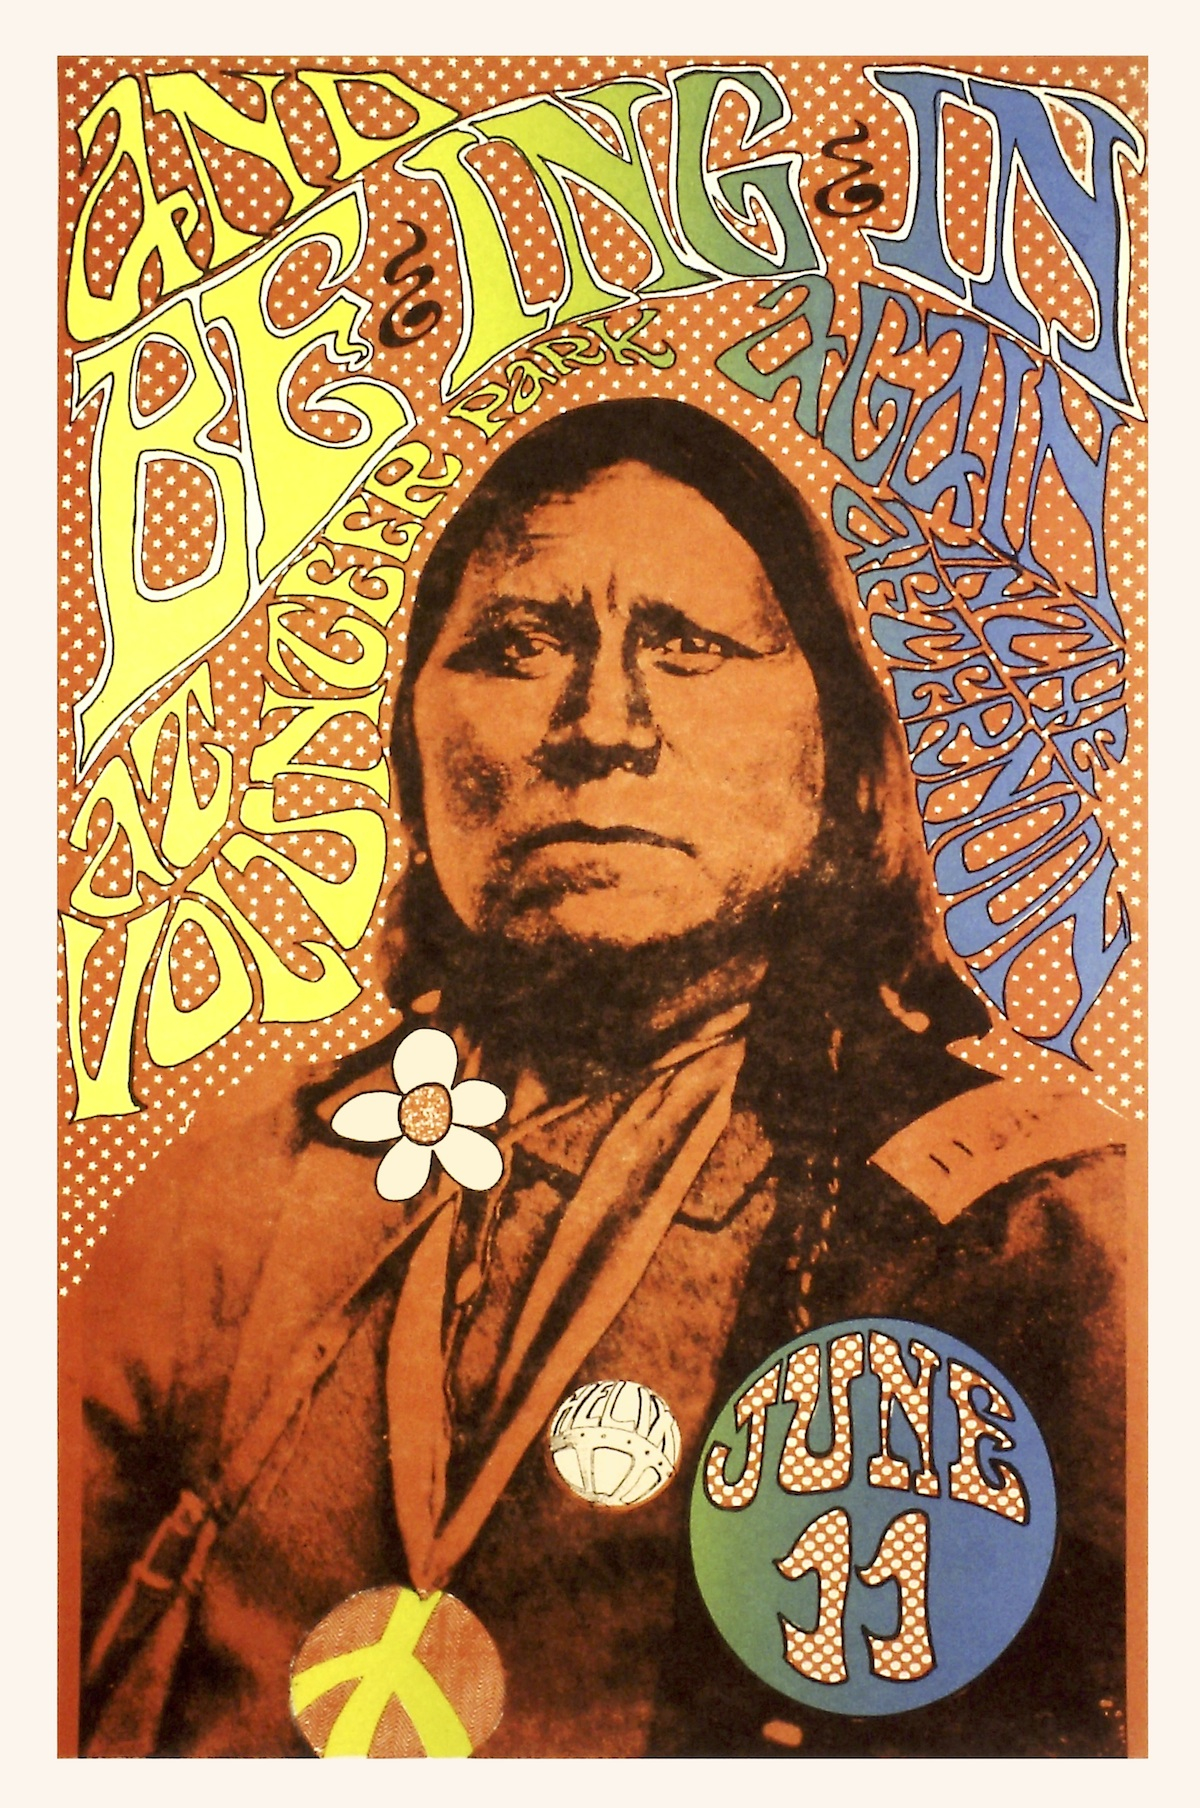 Little is known about artist Gary Eagle, who designed both the poster above and the poster at top, but his work was an important part of Seattle's psychedelic poster scene of the late 1960s.